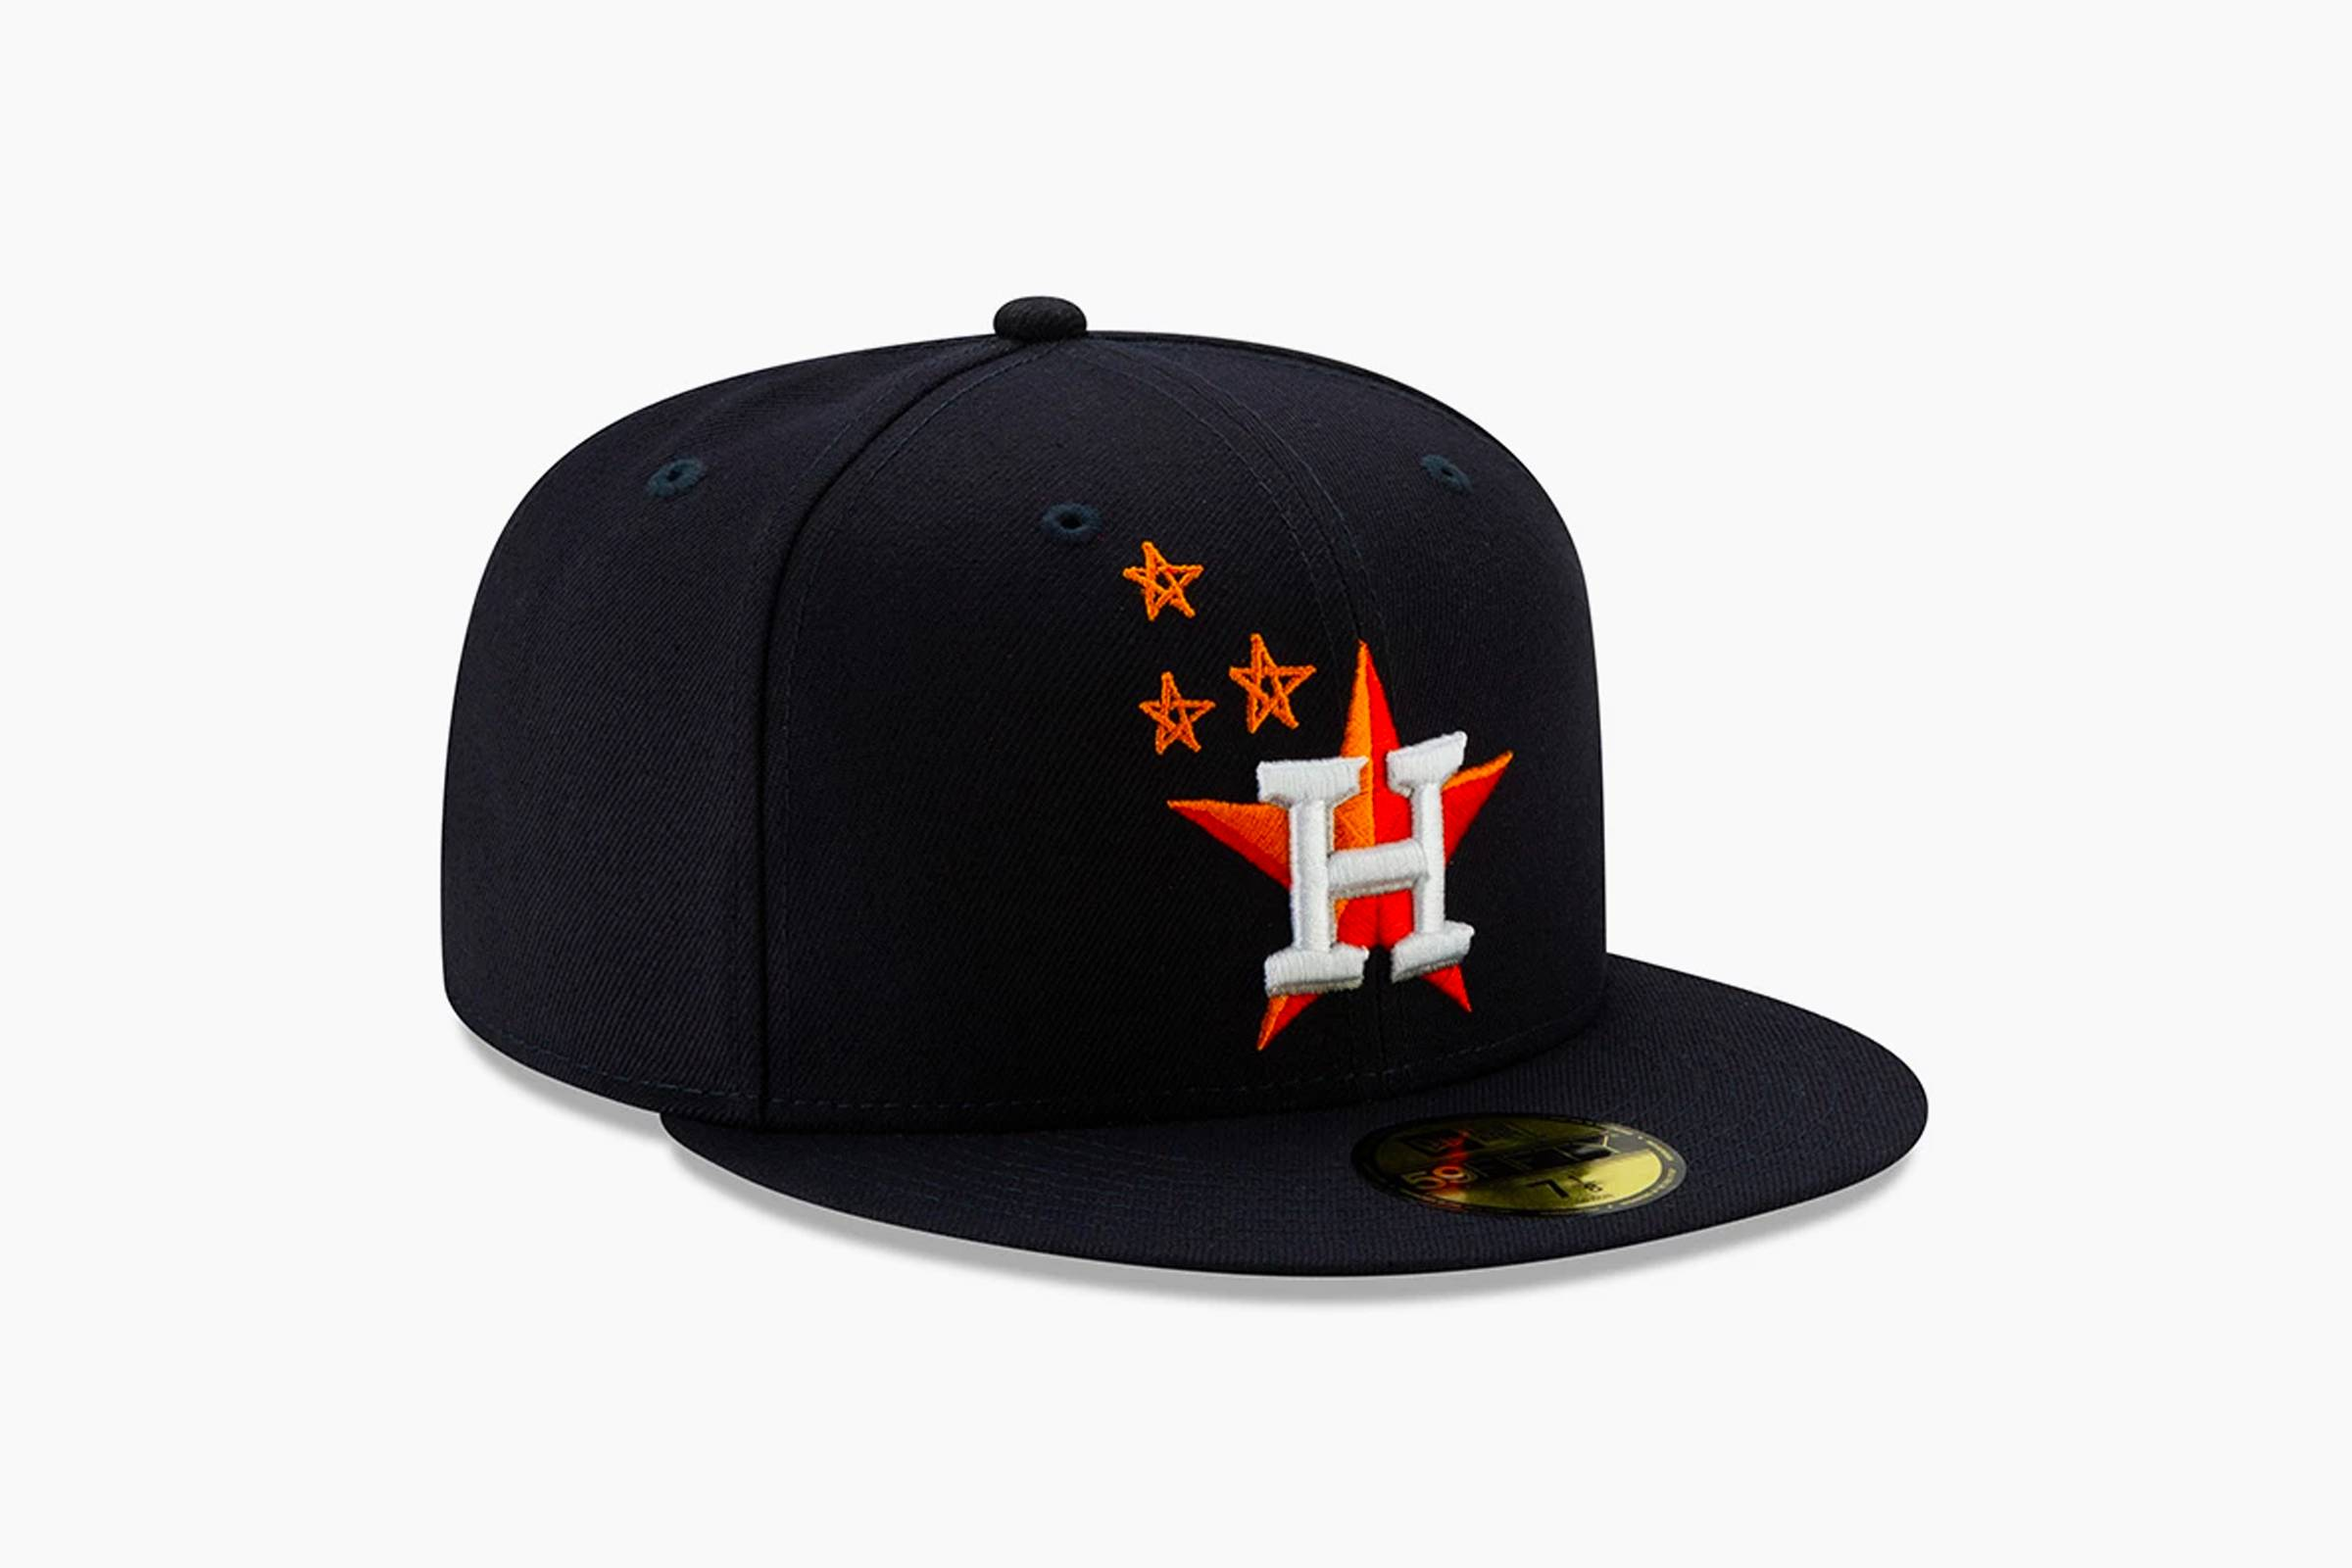 622f7cc471296b If his love for the Houston Rockets is well-known, Travis Scott's love for  the Houston Astros is not far behind. Teaming with on-field outfitters New  Era, ...